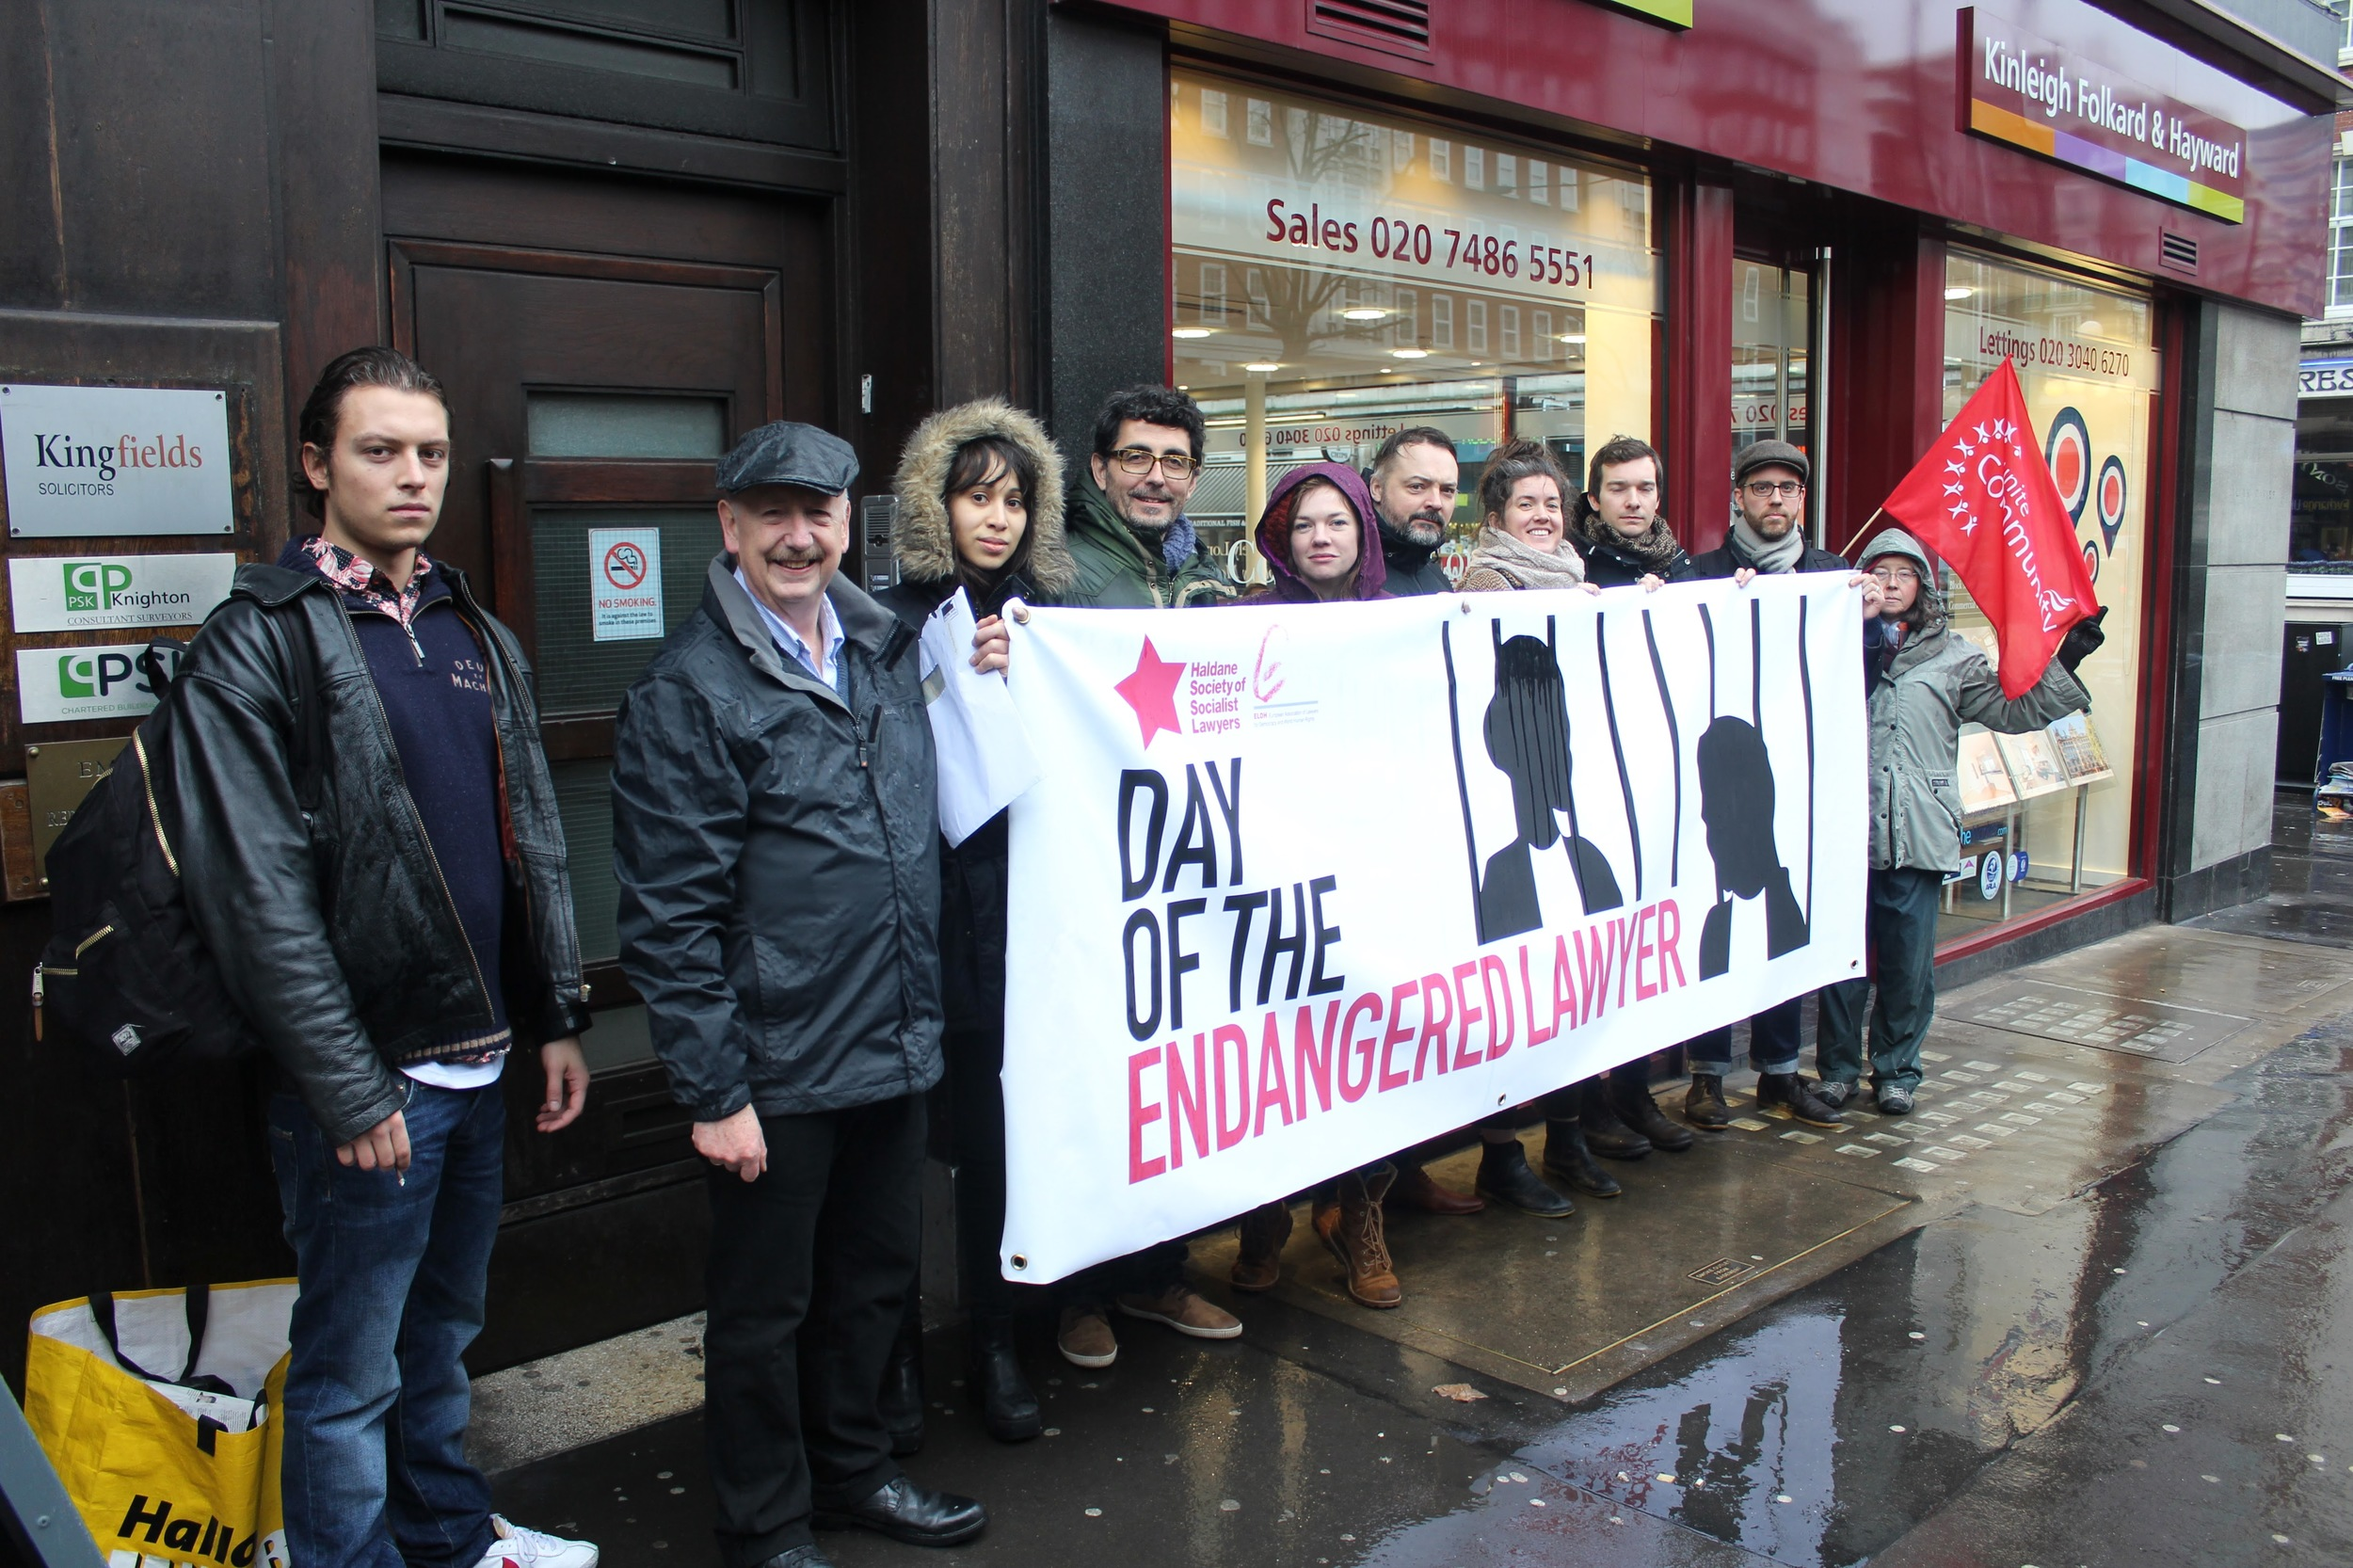 Members of the Haldane Society of Socialist Lawyers and other campaigners attend outside the Honduran Embassy in London.